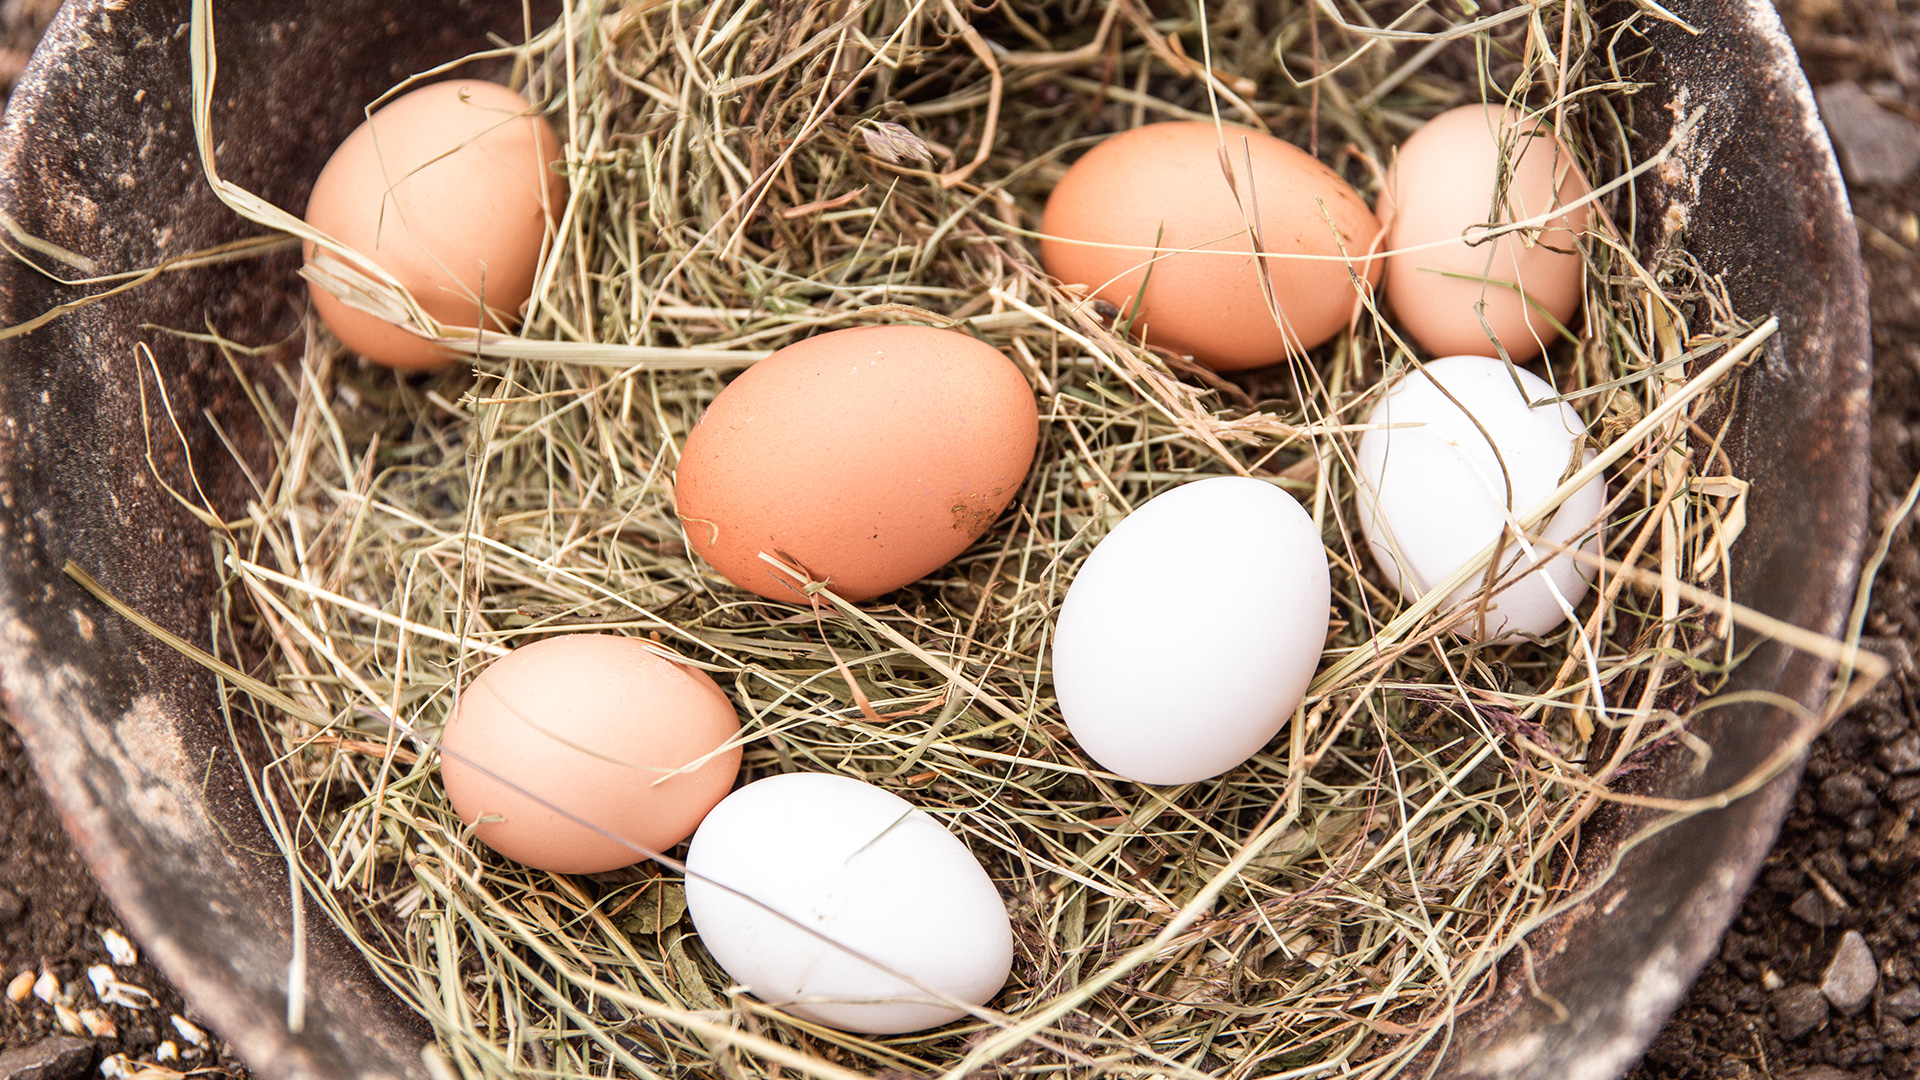 Eggs in a nest in detail